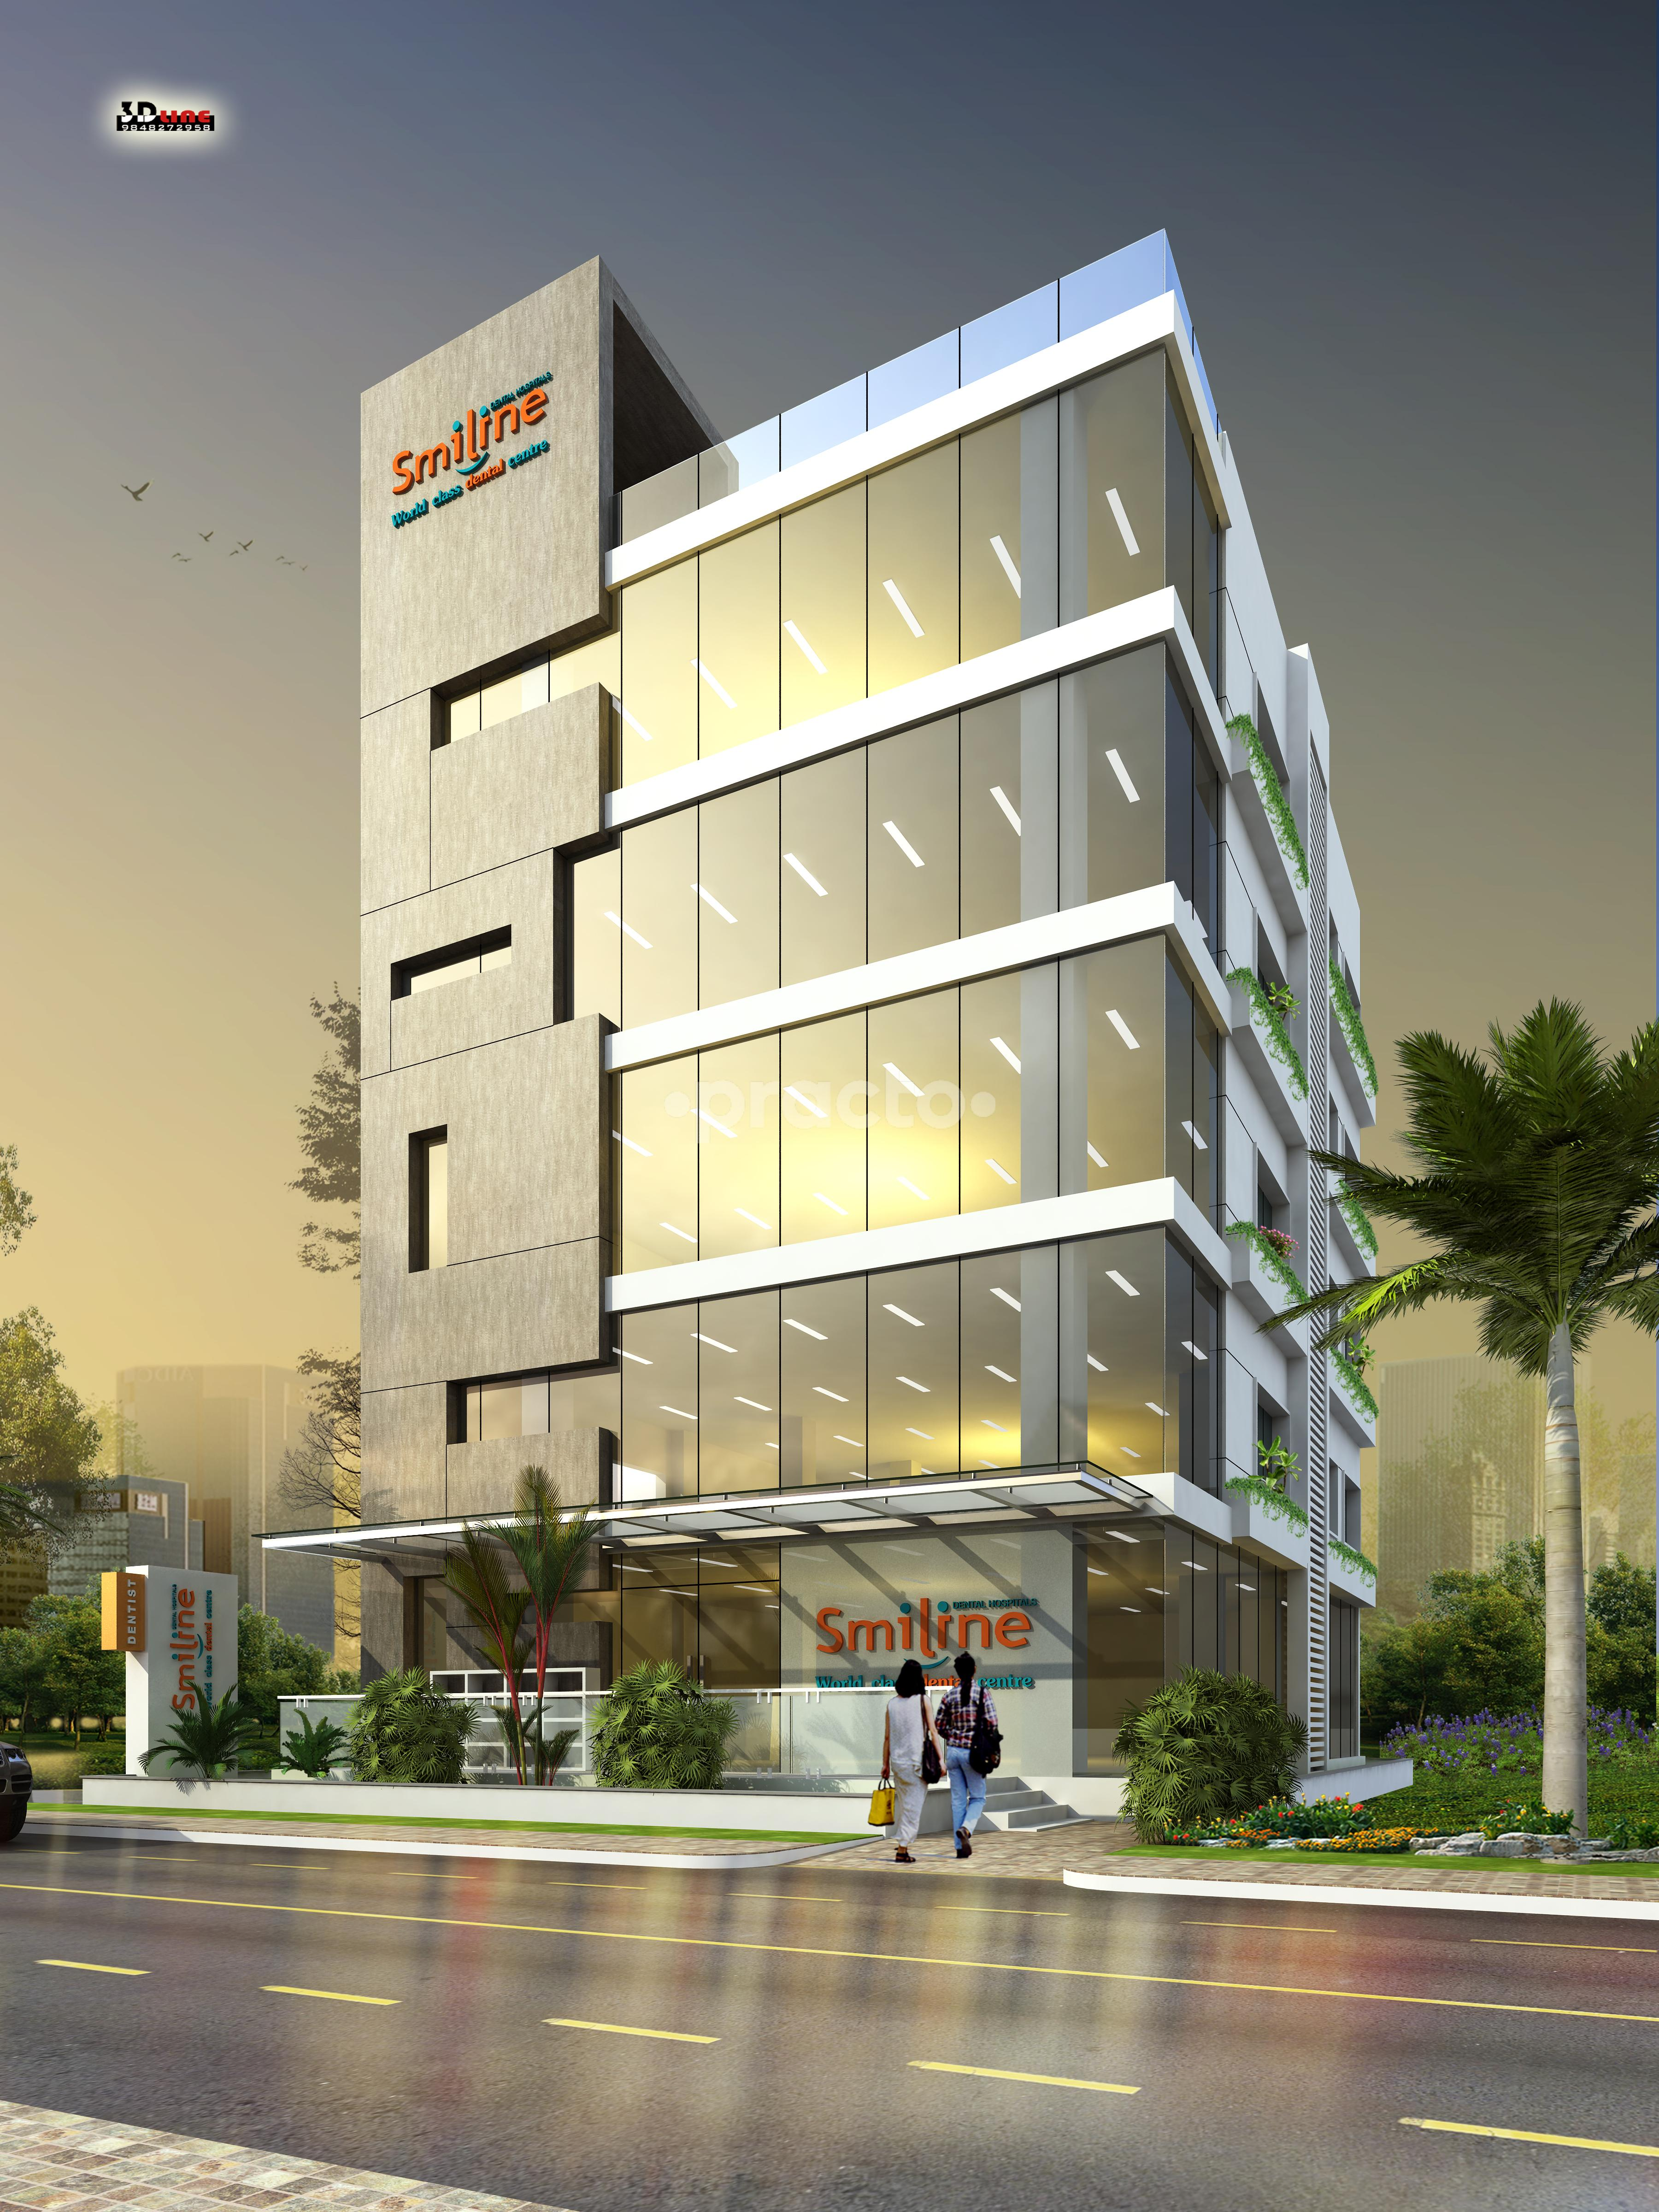 Best Hospitals in Madhapur, Hyderabad - Book Appointment, View